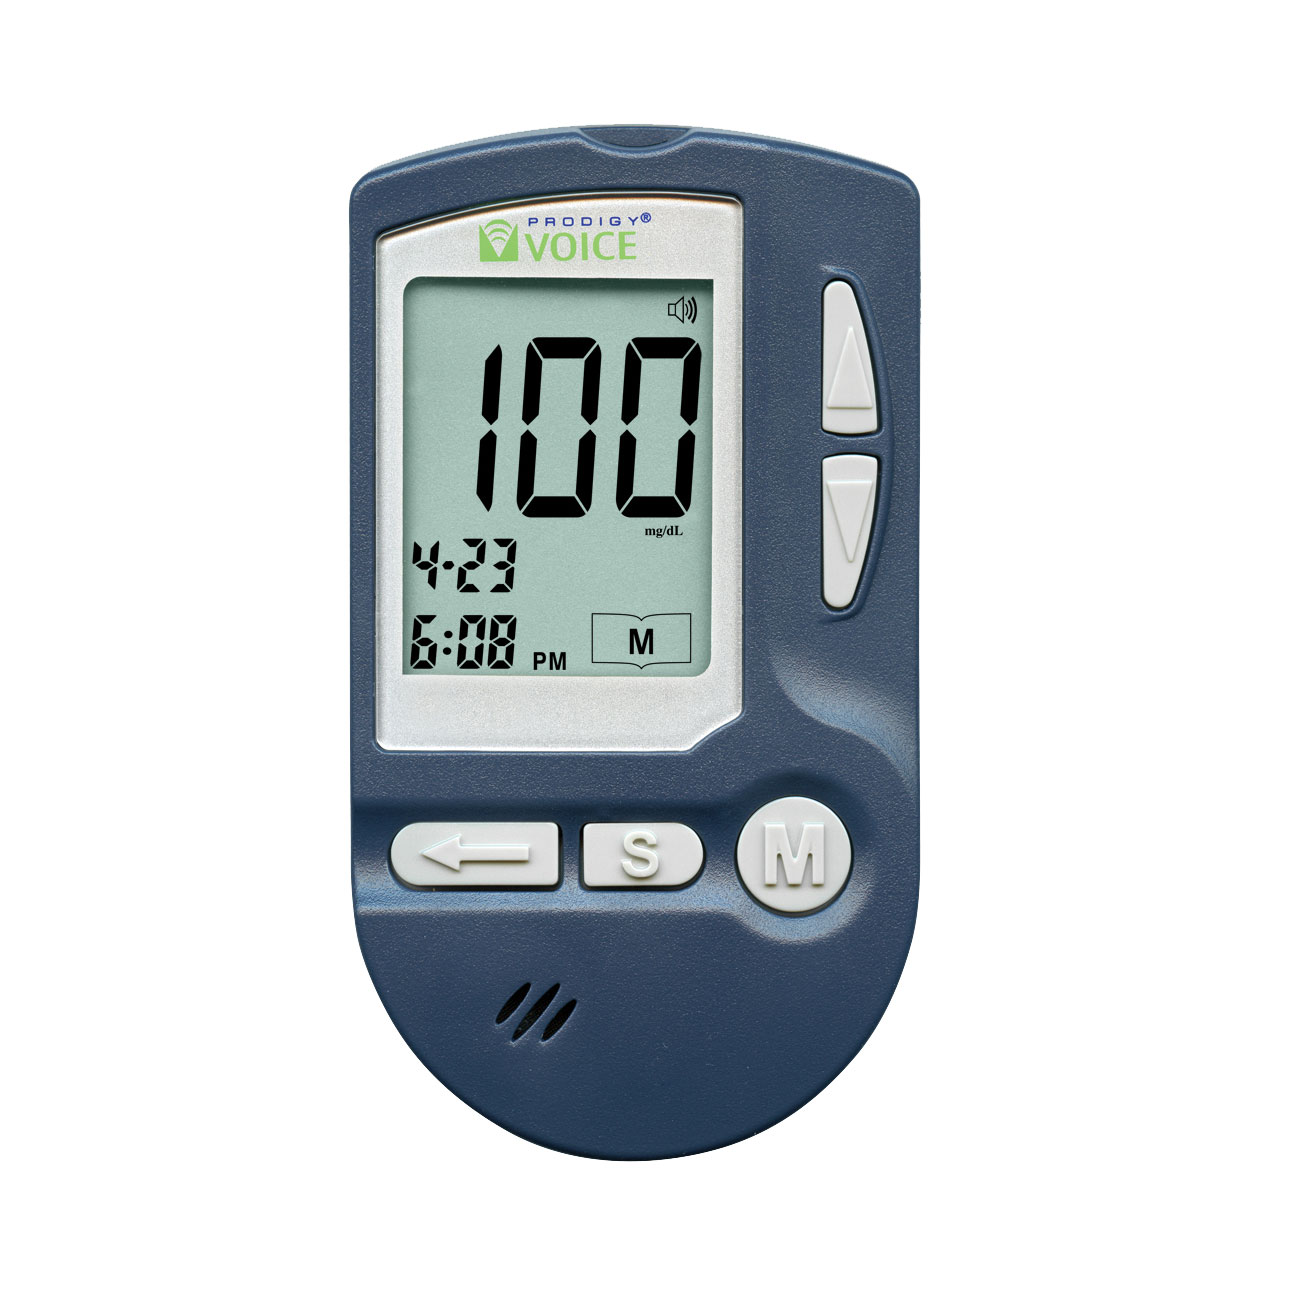 PRODIGY Voice Blood Glucose Monitoring System Price: $84.95